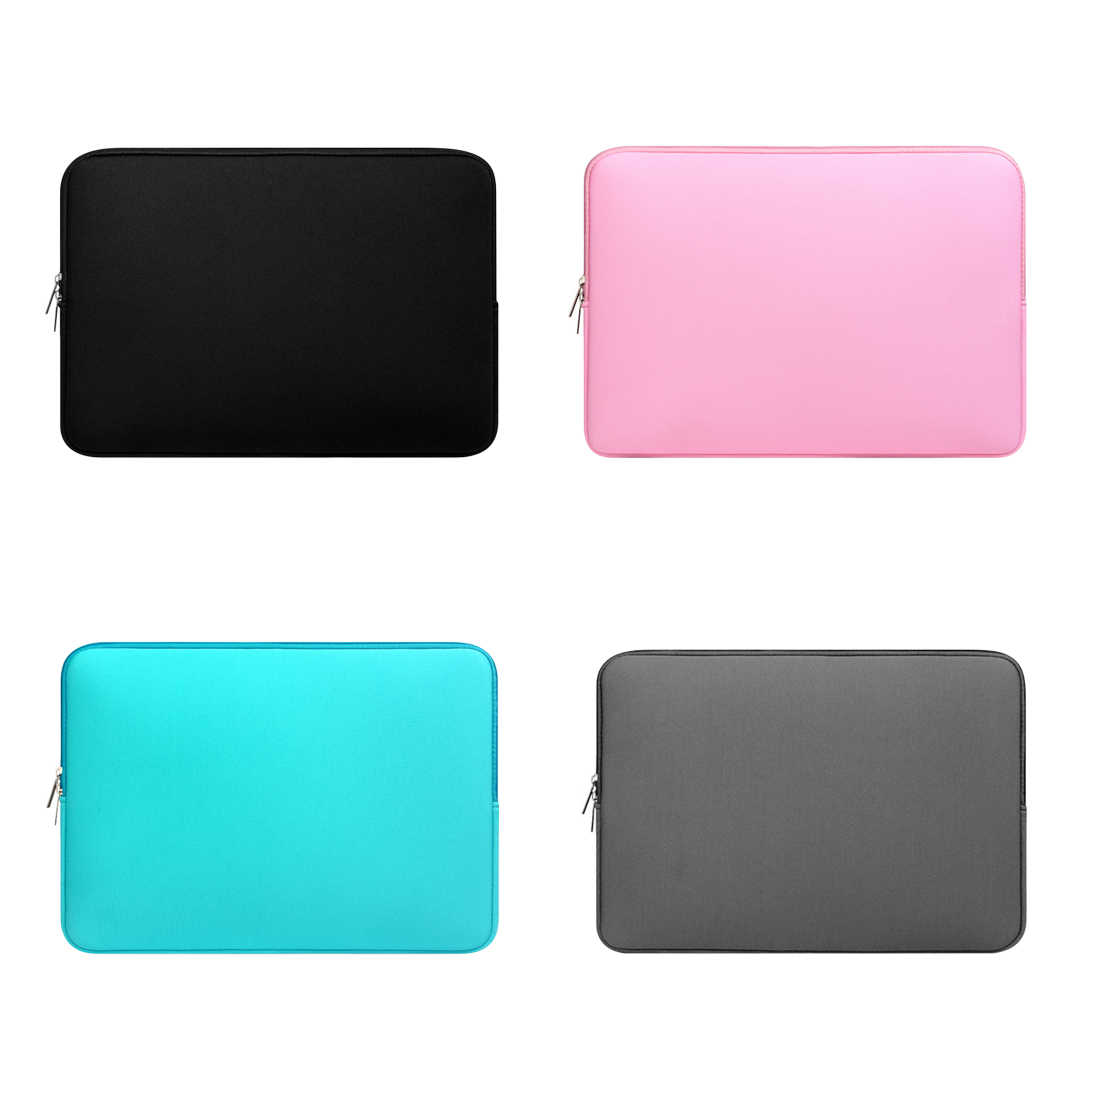 1d4ee991ab74 Detail Feedback Questions about NOYOKERE New Arrival Soft Laptop ...